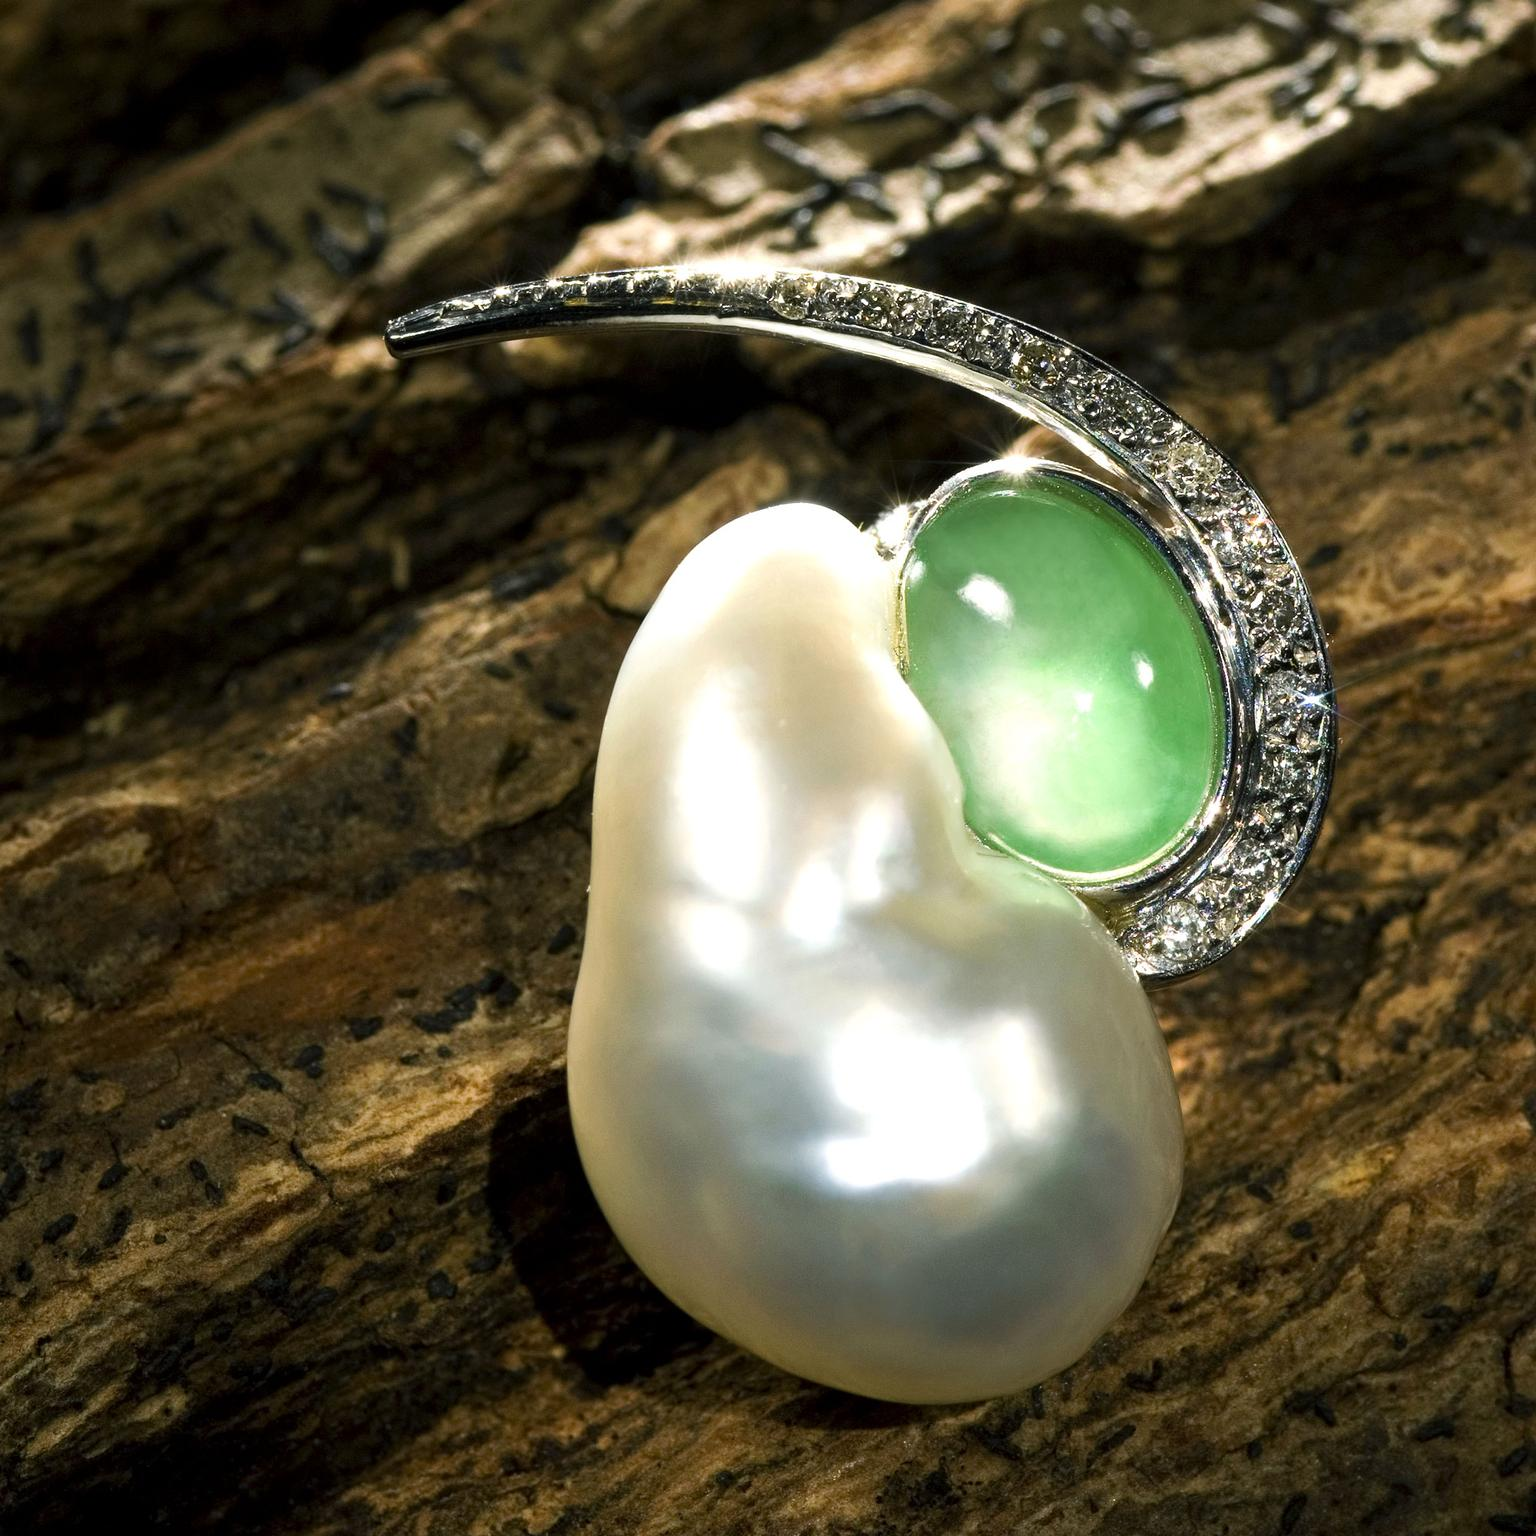 KMCdesign pearl and jade pendant